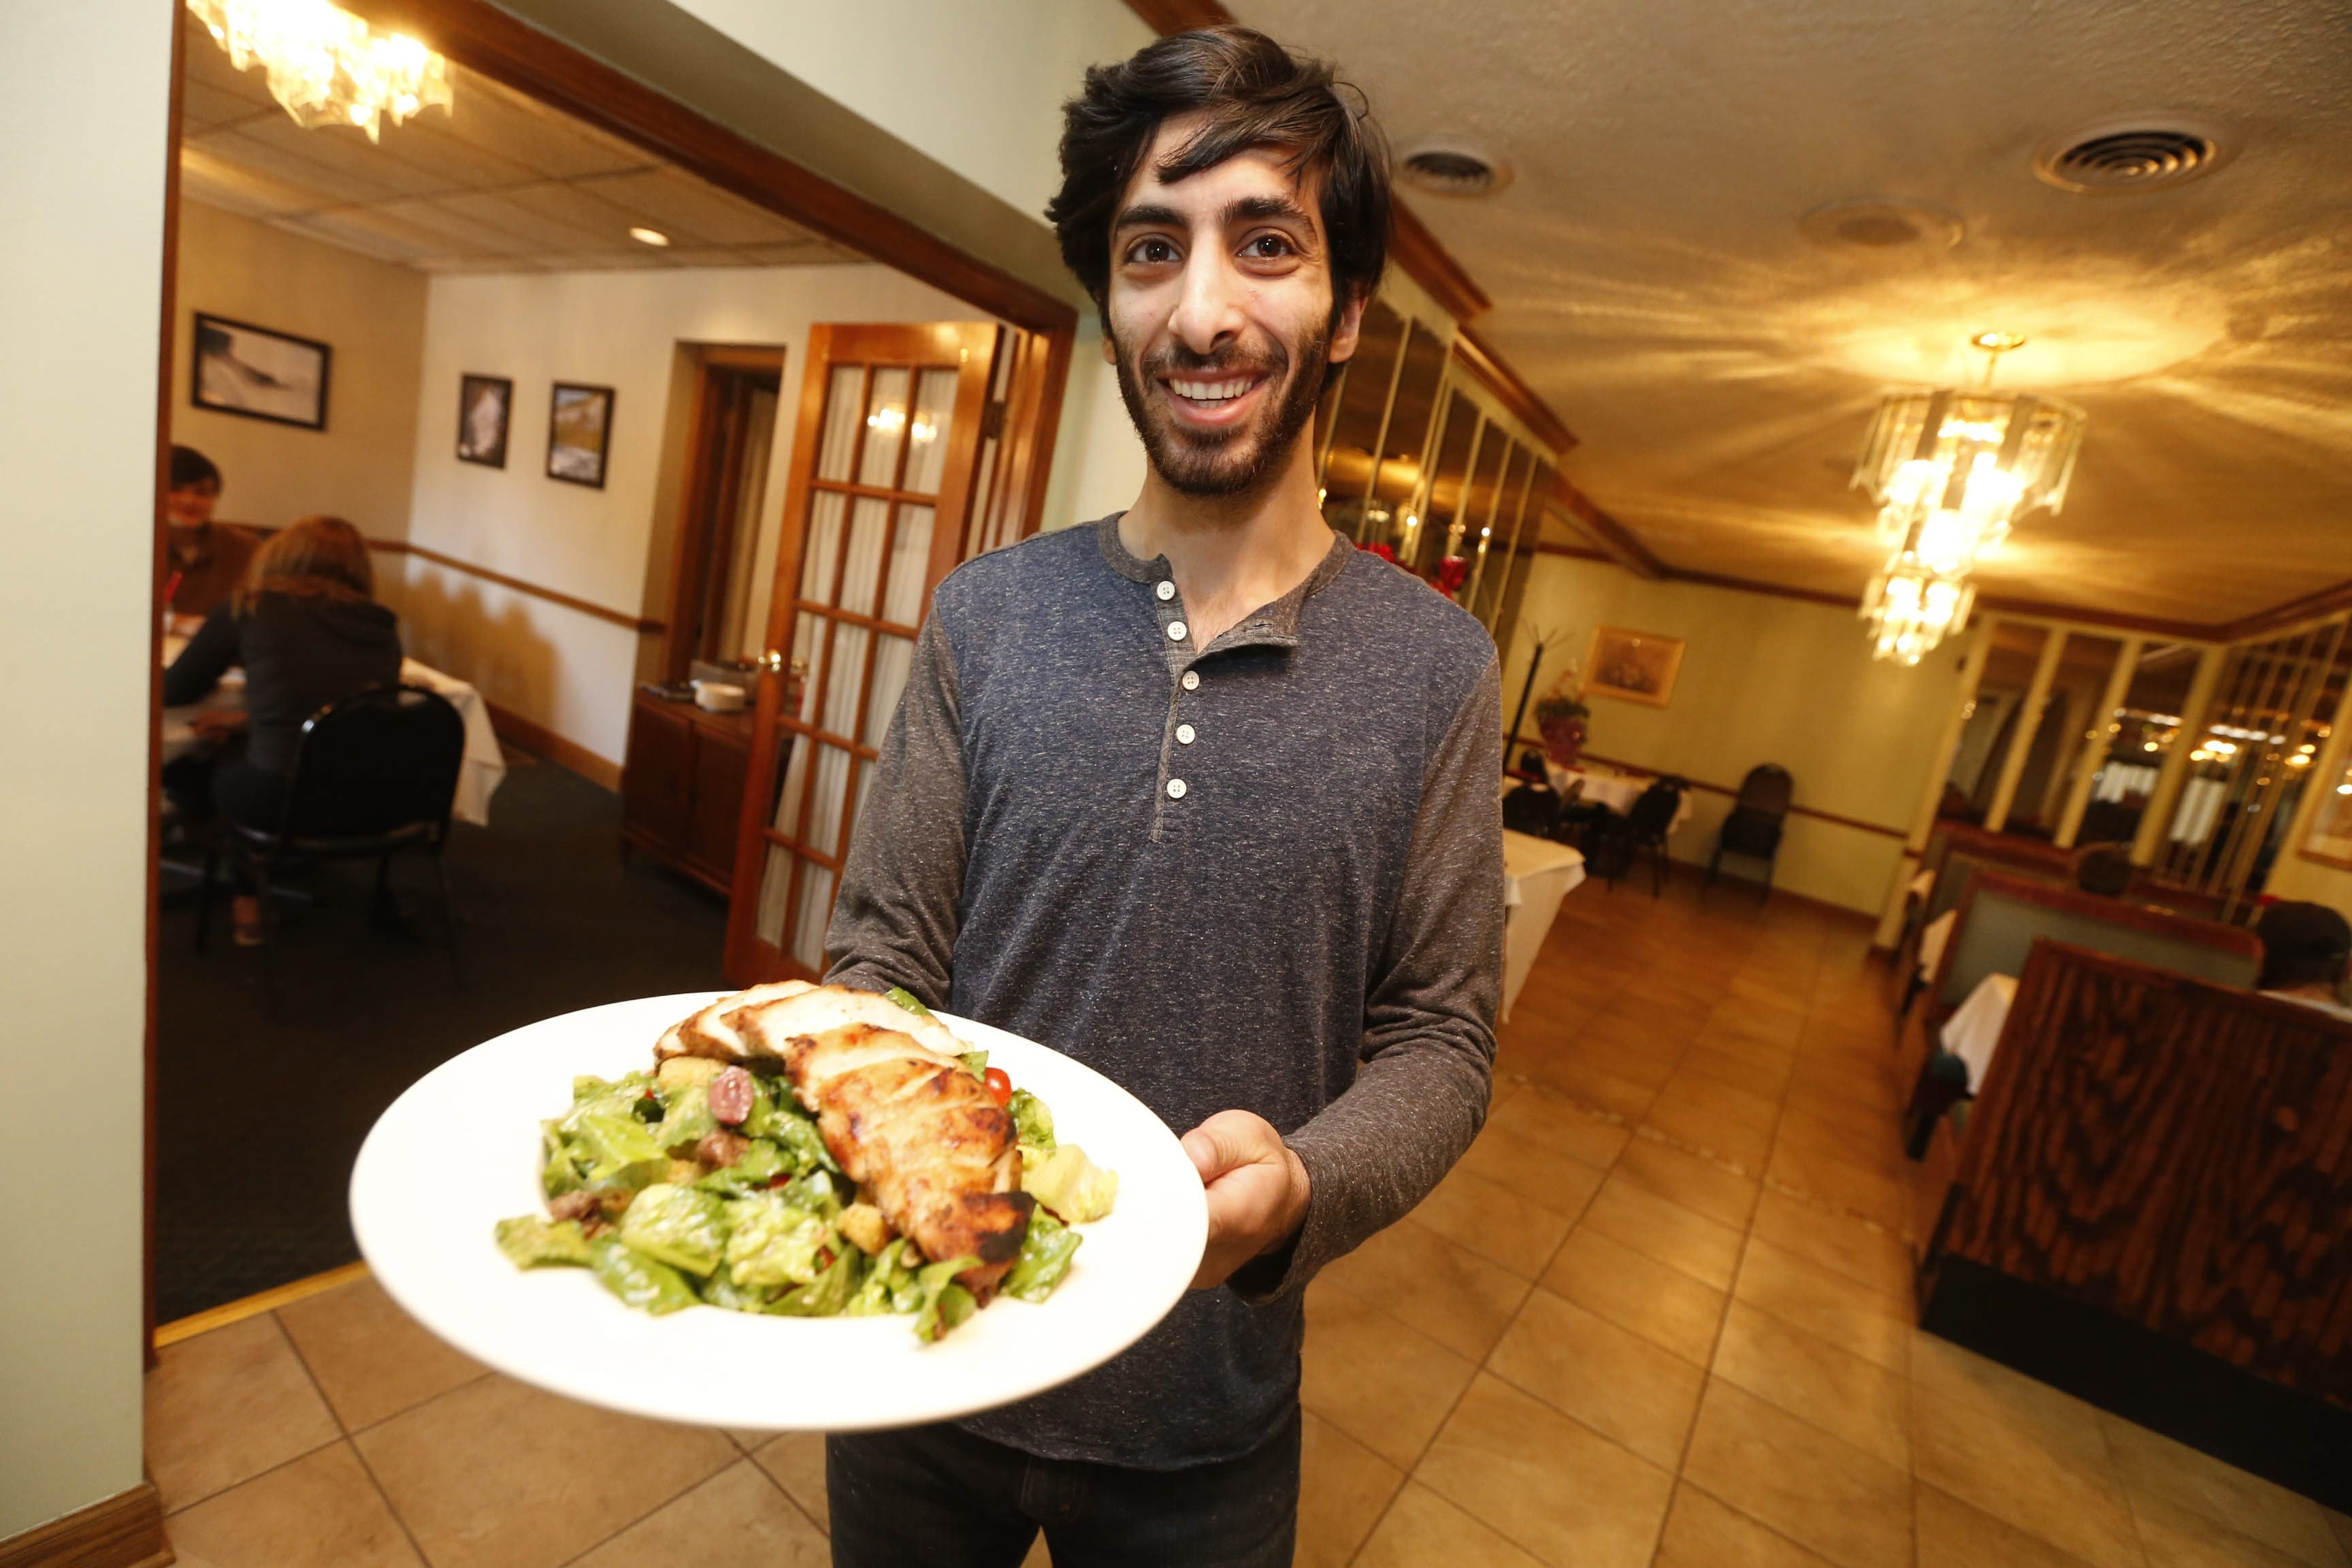 Robert Kirkham/Buffalo News JJ Merhi, whose family owns 755 Restaurant and Lounge in Niagara Falls, shows off the popular Caesar Salad with Chicken. The restaurant specializes in American, Italian and Lebanese foods.